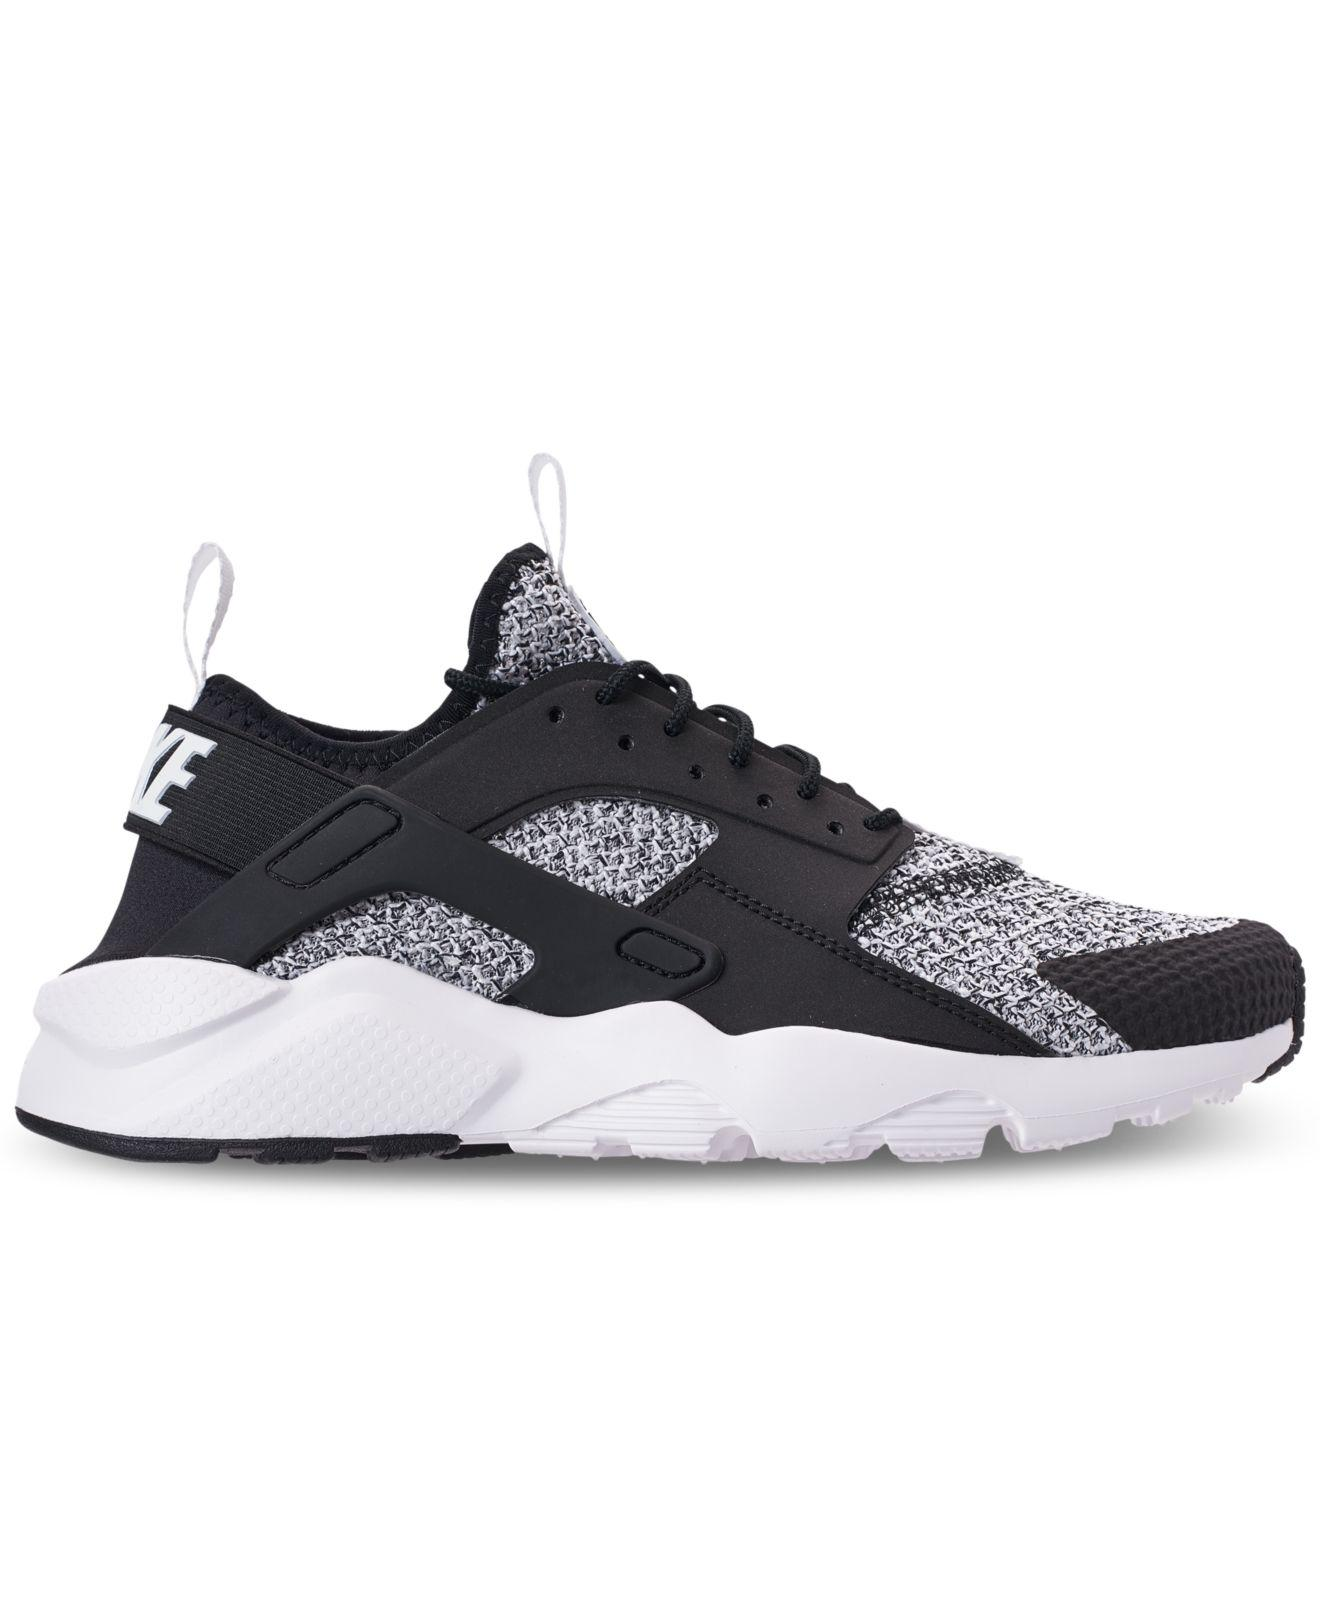 63abf86704c31 Lyst - Nike Air Huarache Run Ultra Se Casual Sneakers From Finish ...